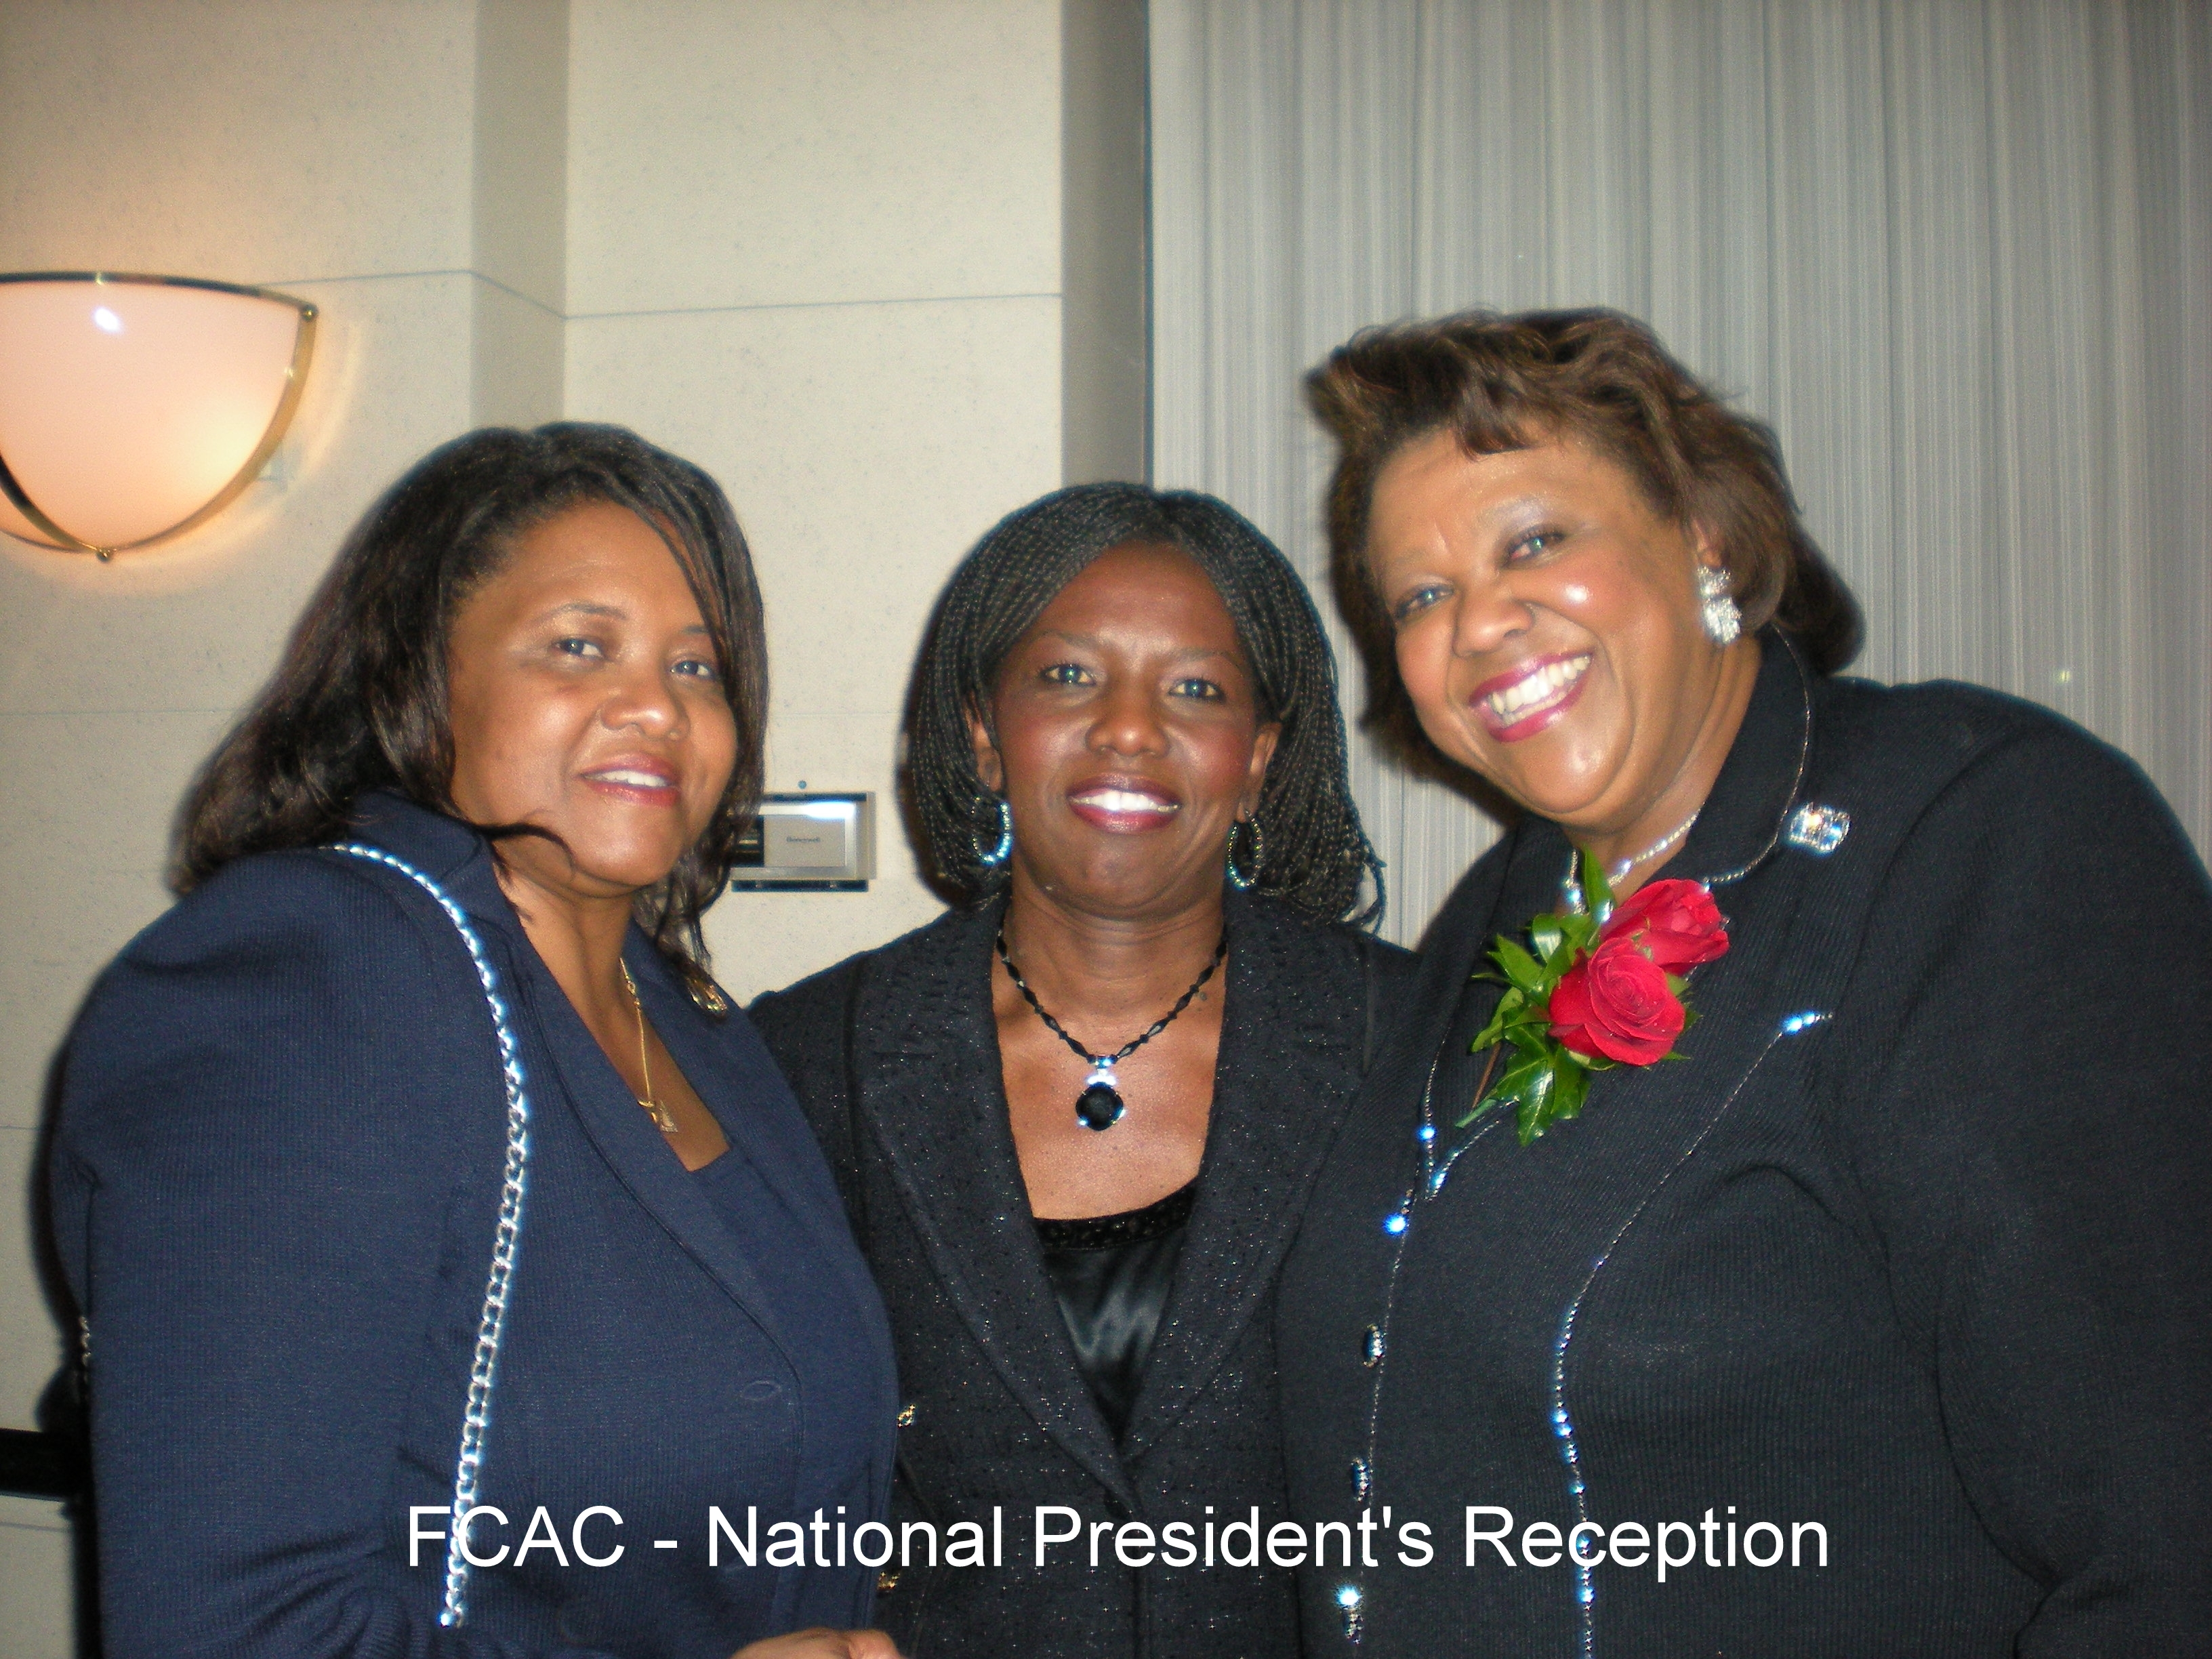 24th Natl President's- Reception WDC 2008 with 24th Pres